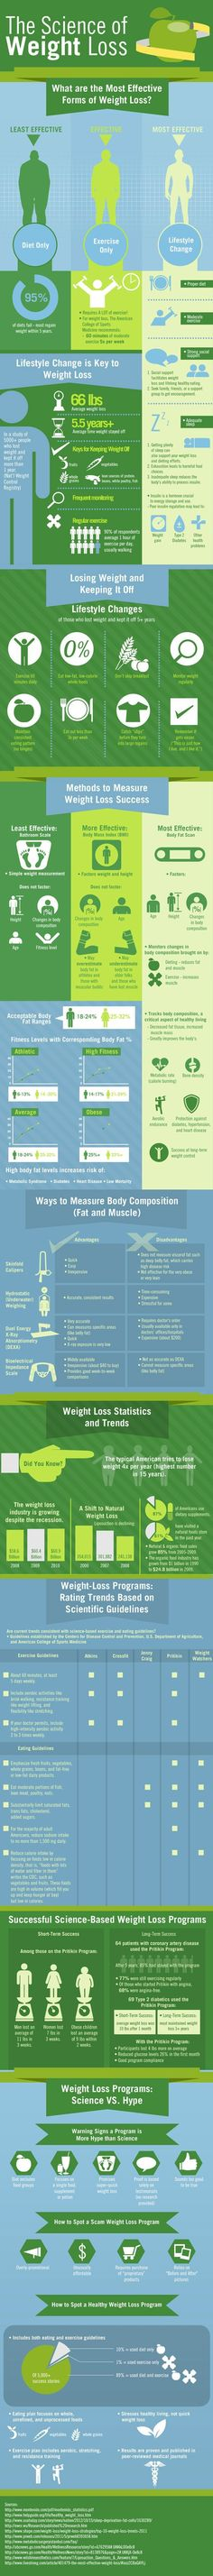 The Science of Weight Loss (Infographic)